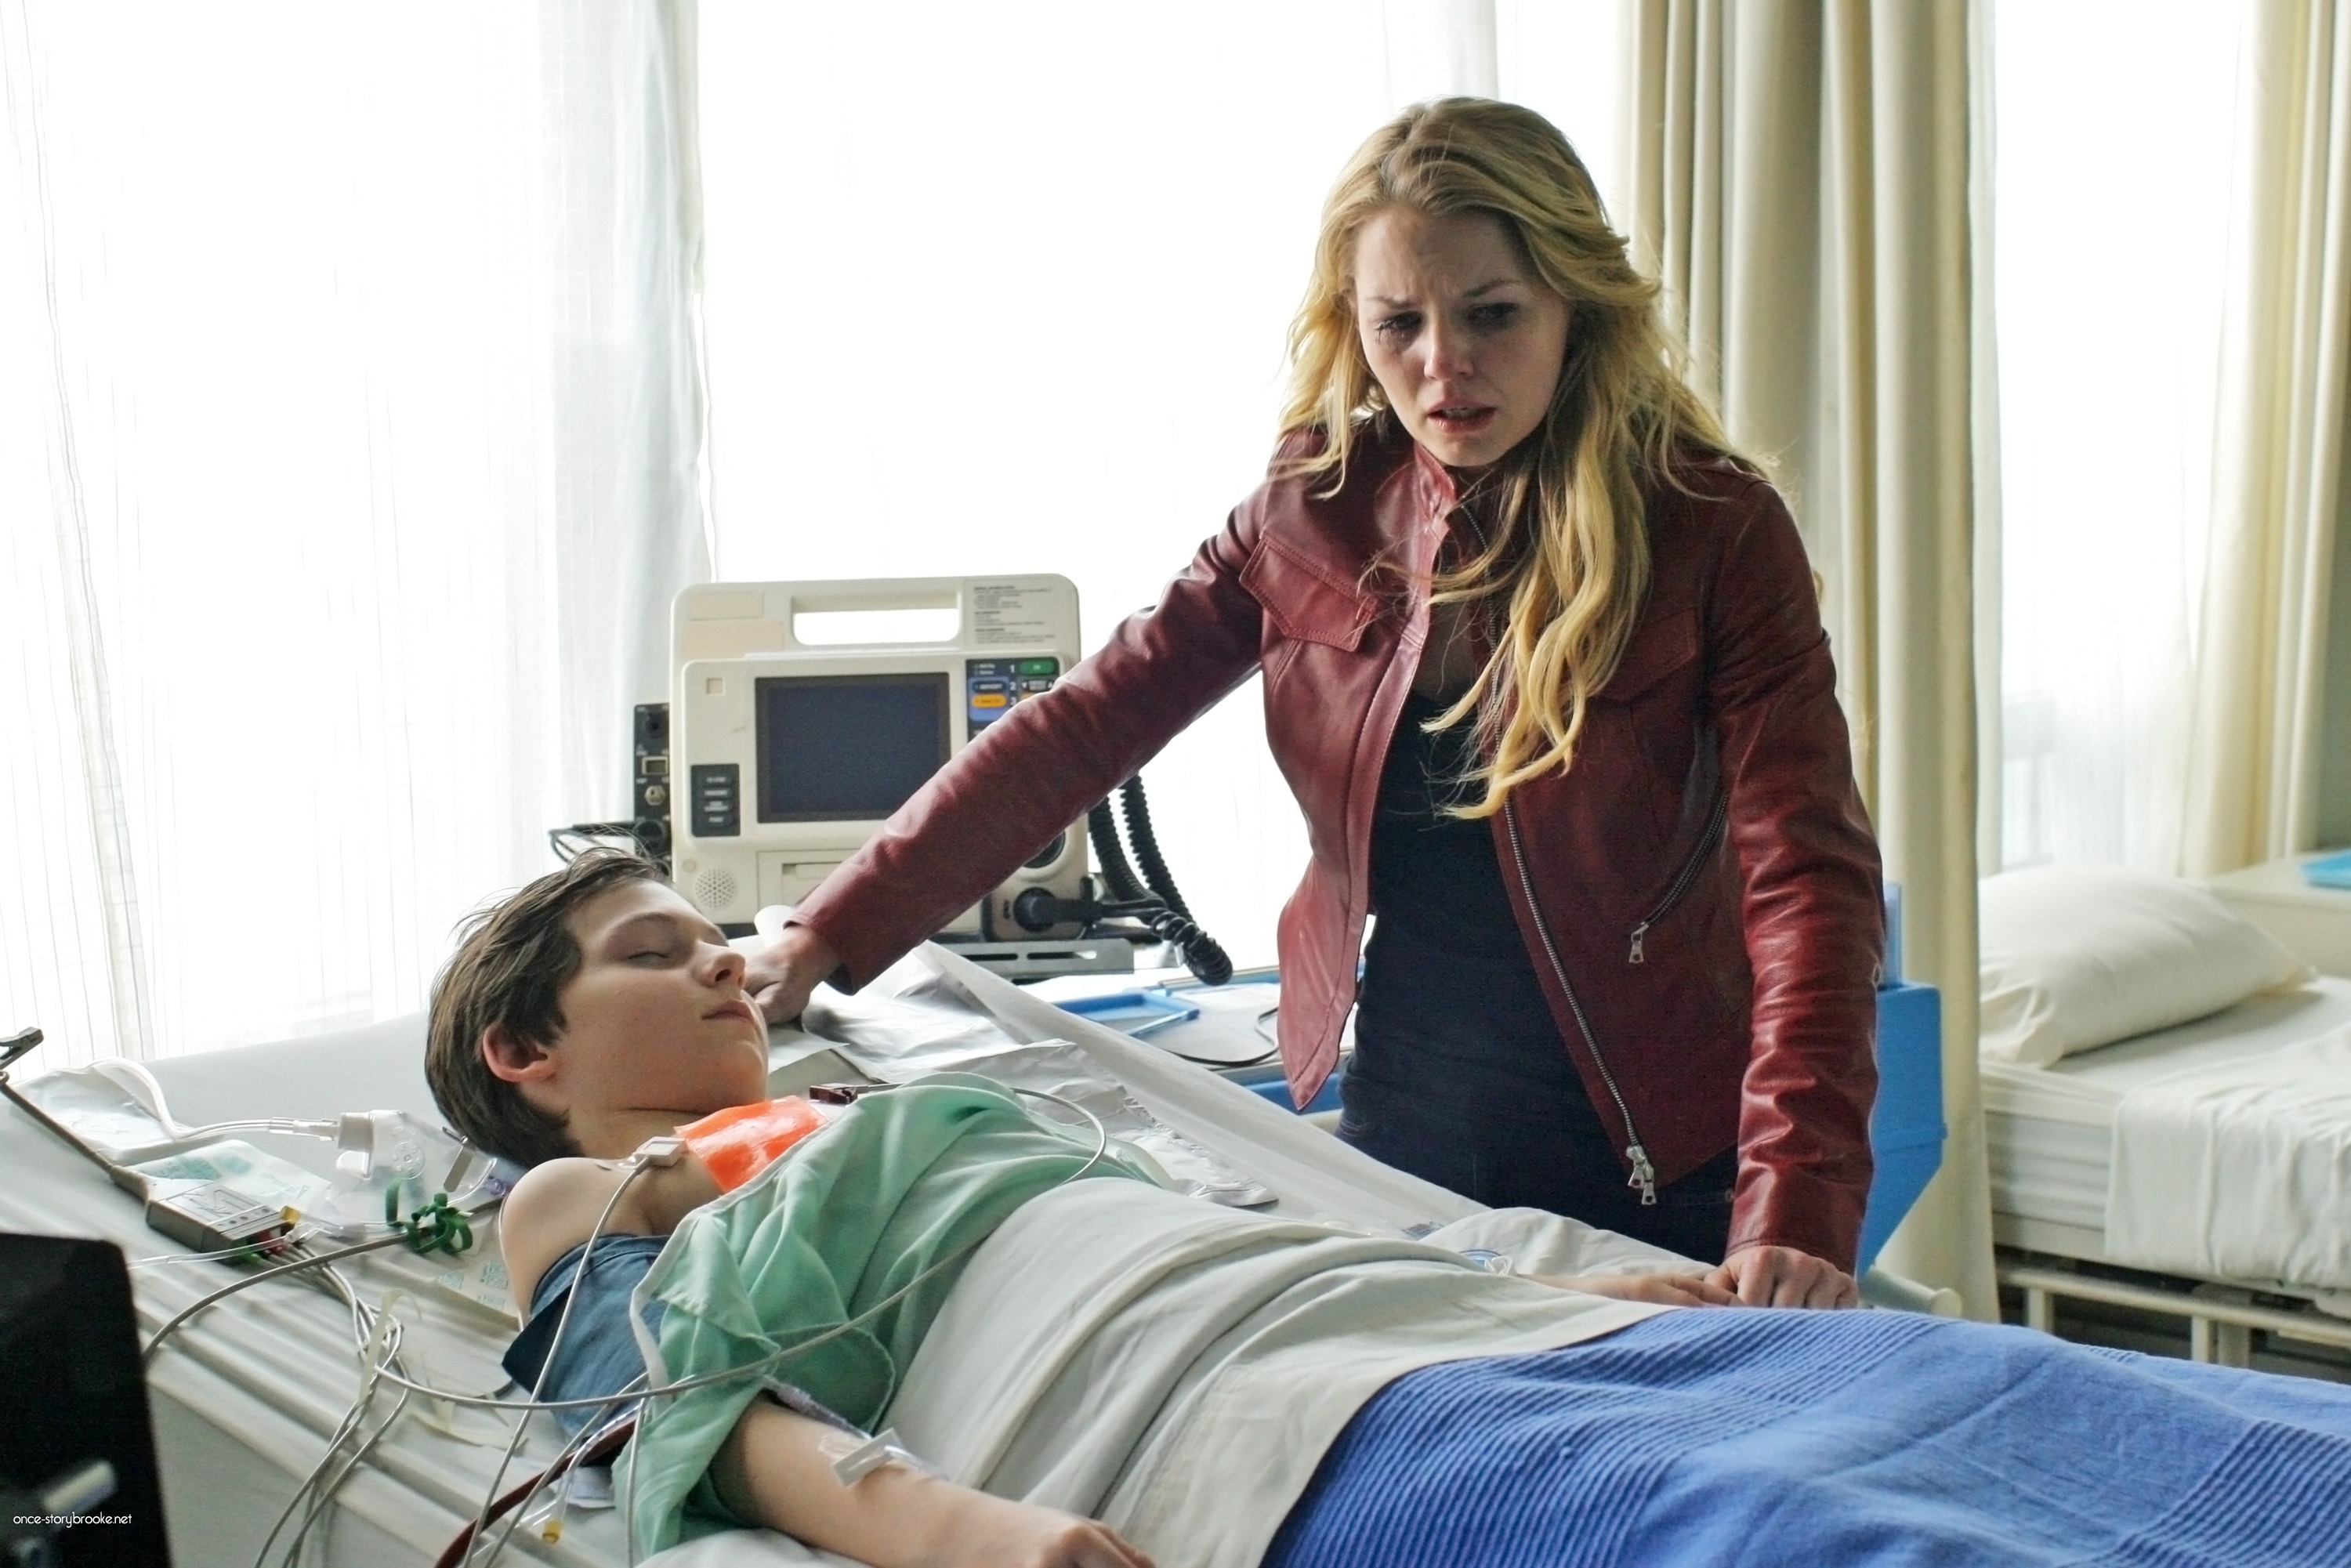 Once Upon A Time Saison 1 Episode 22 - Le véritable amour 007